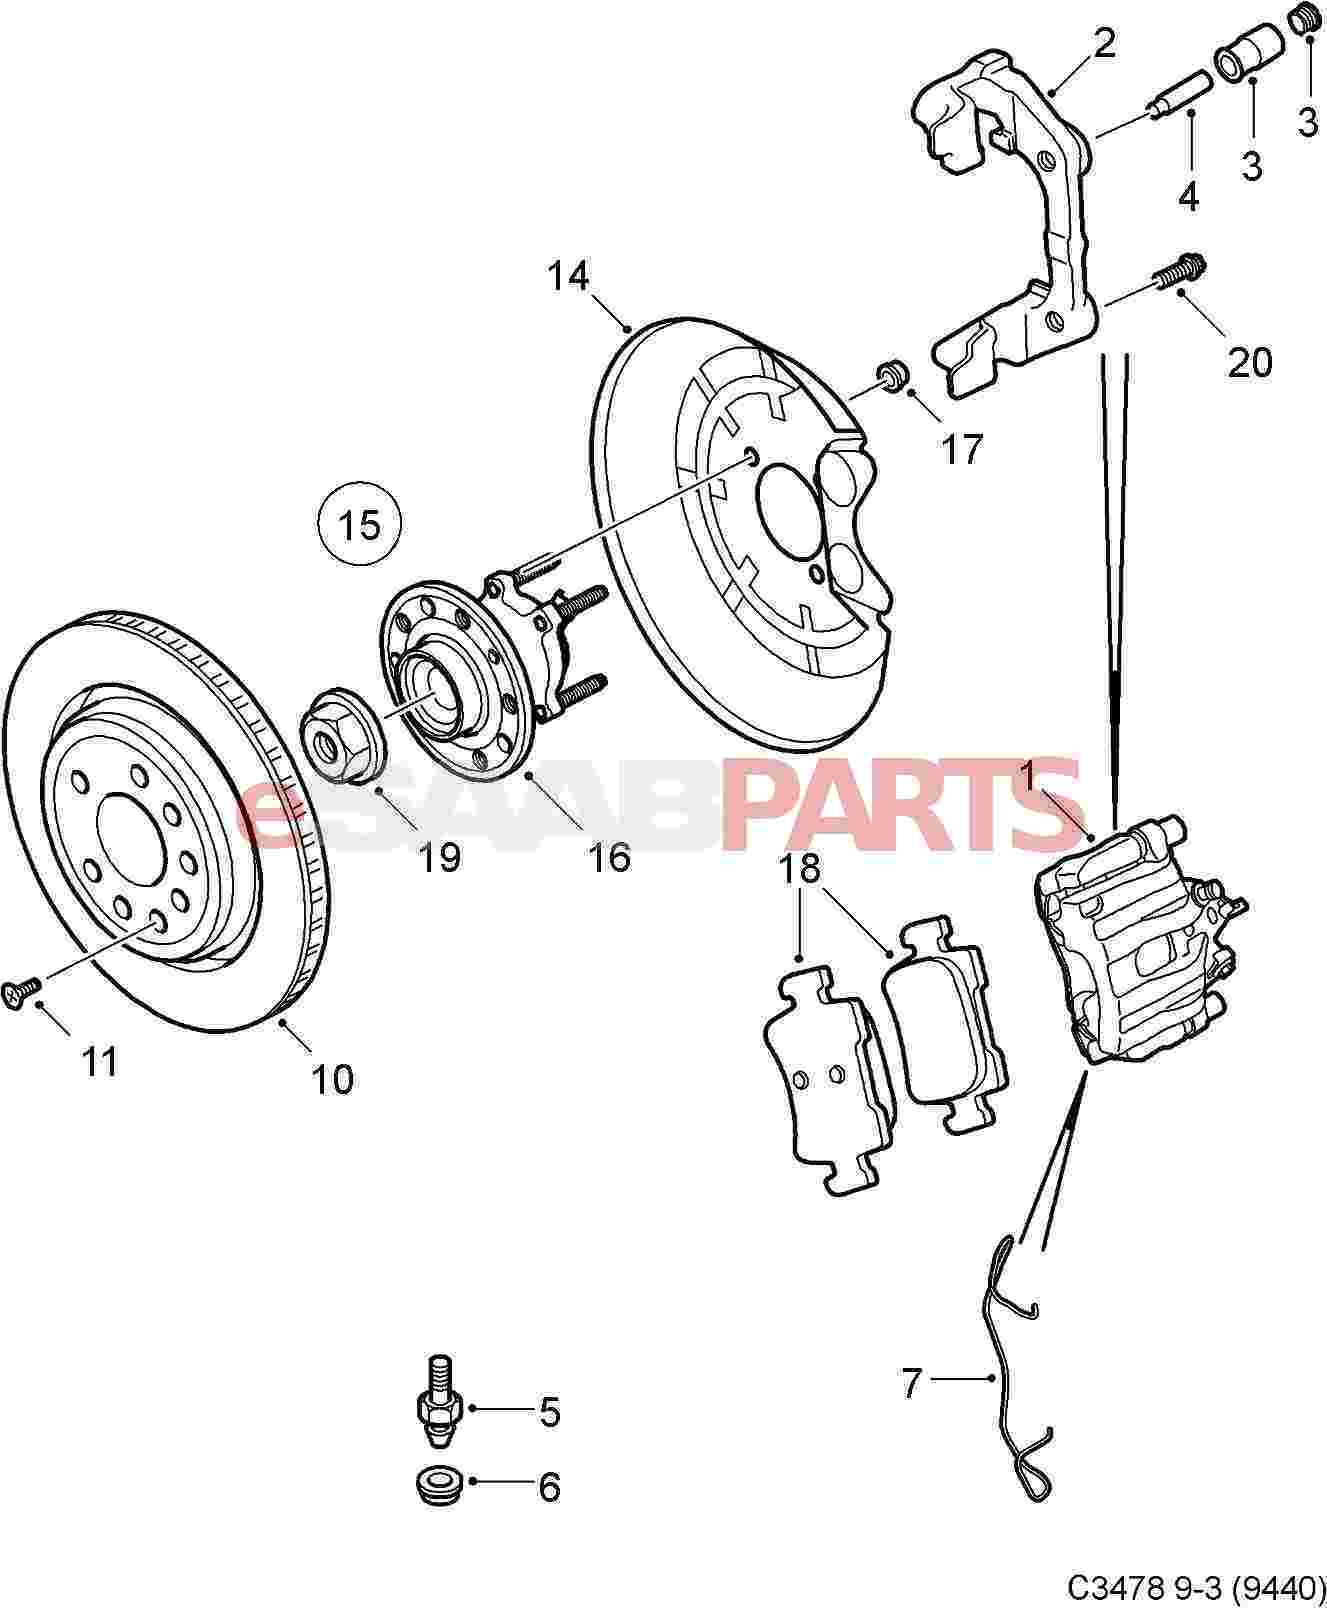 2008 Saab 9 3 Parts Diagram. Saab. Auto Parts Catalog And